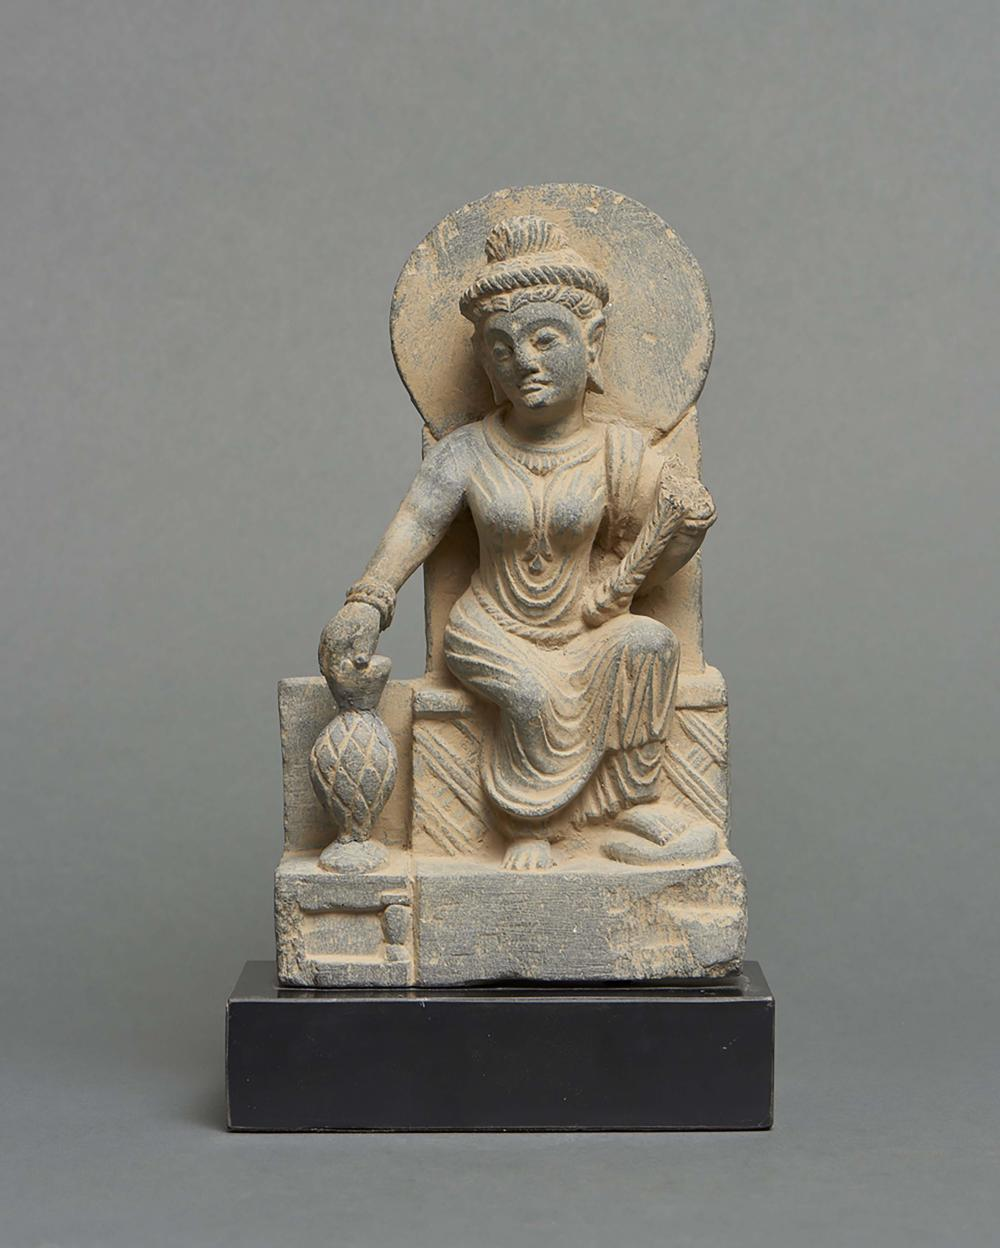 Schist Gandhara figure depicting the Indian goddess Hariti, who is the prot